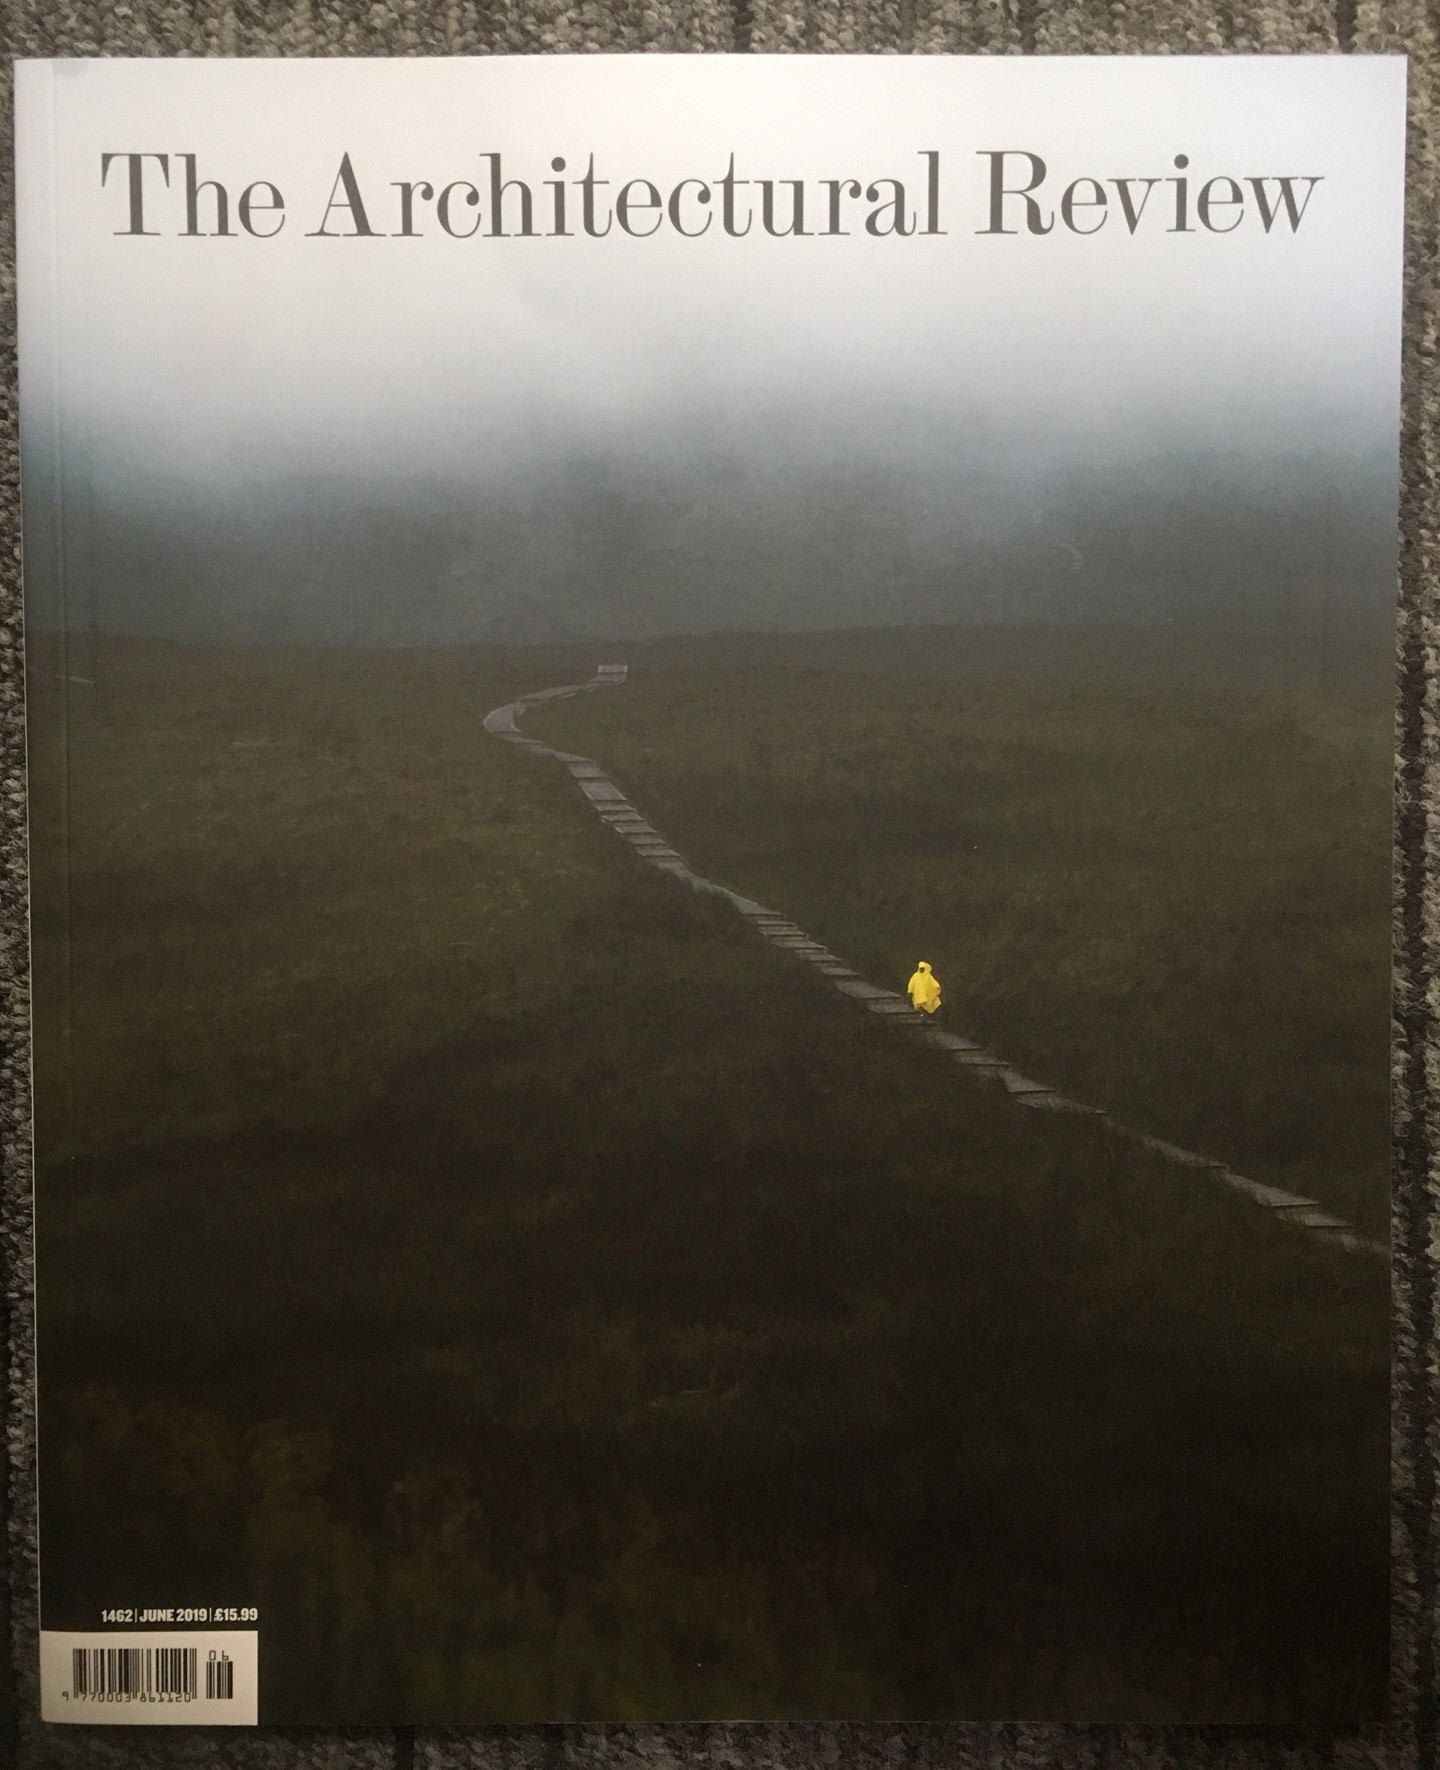 Architectural Review 1462 June 2019